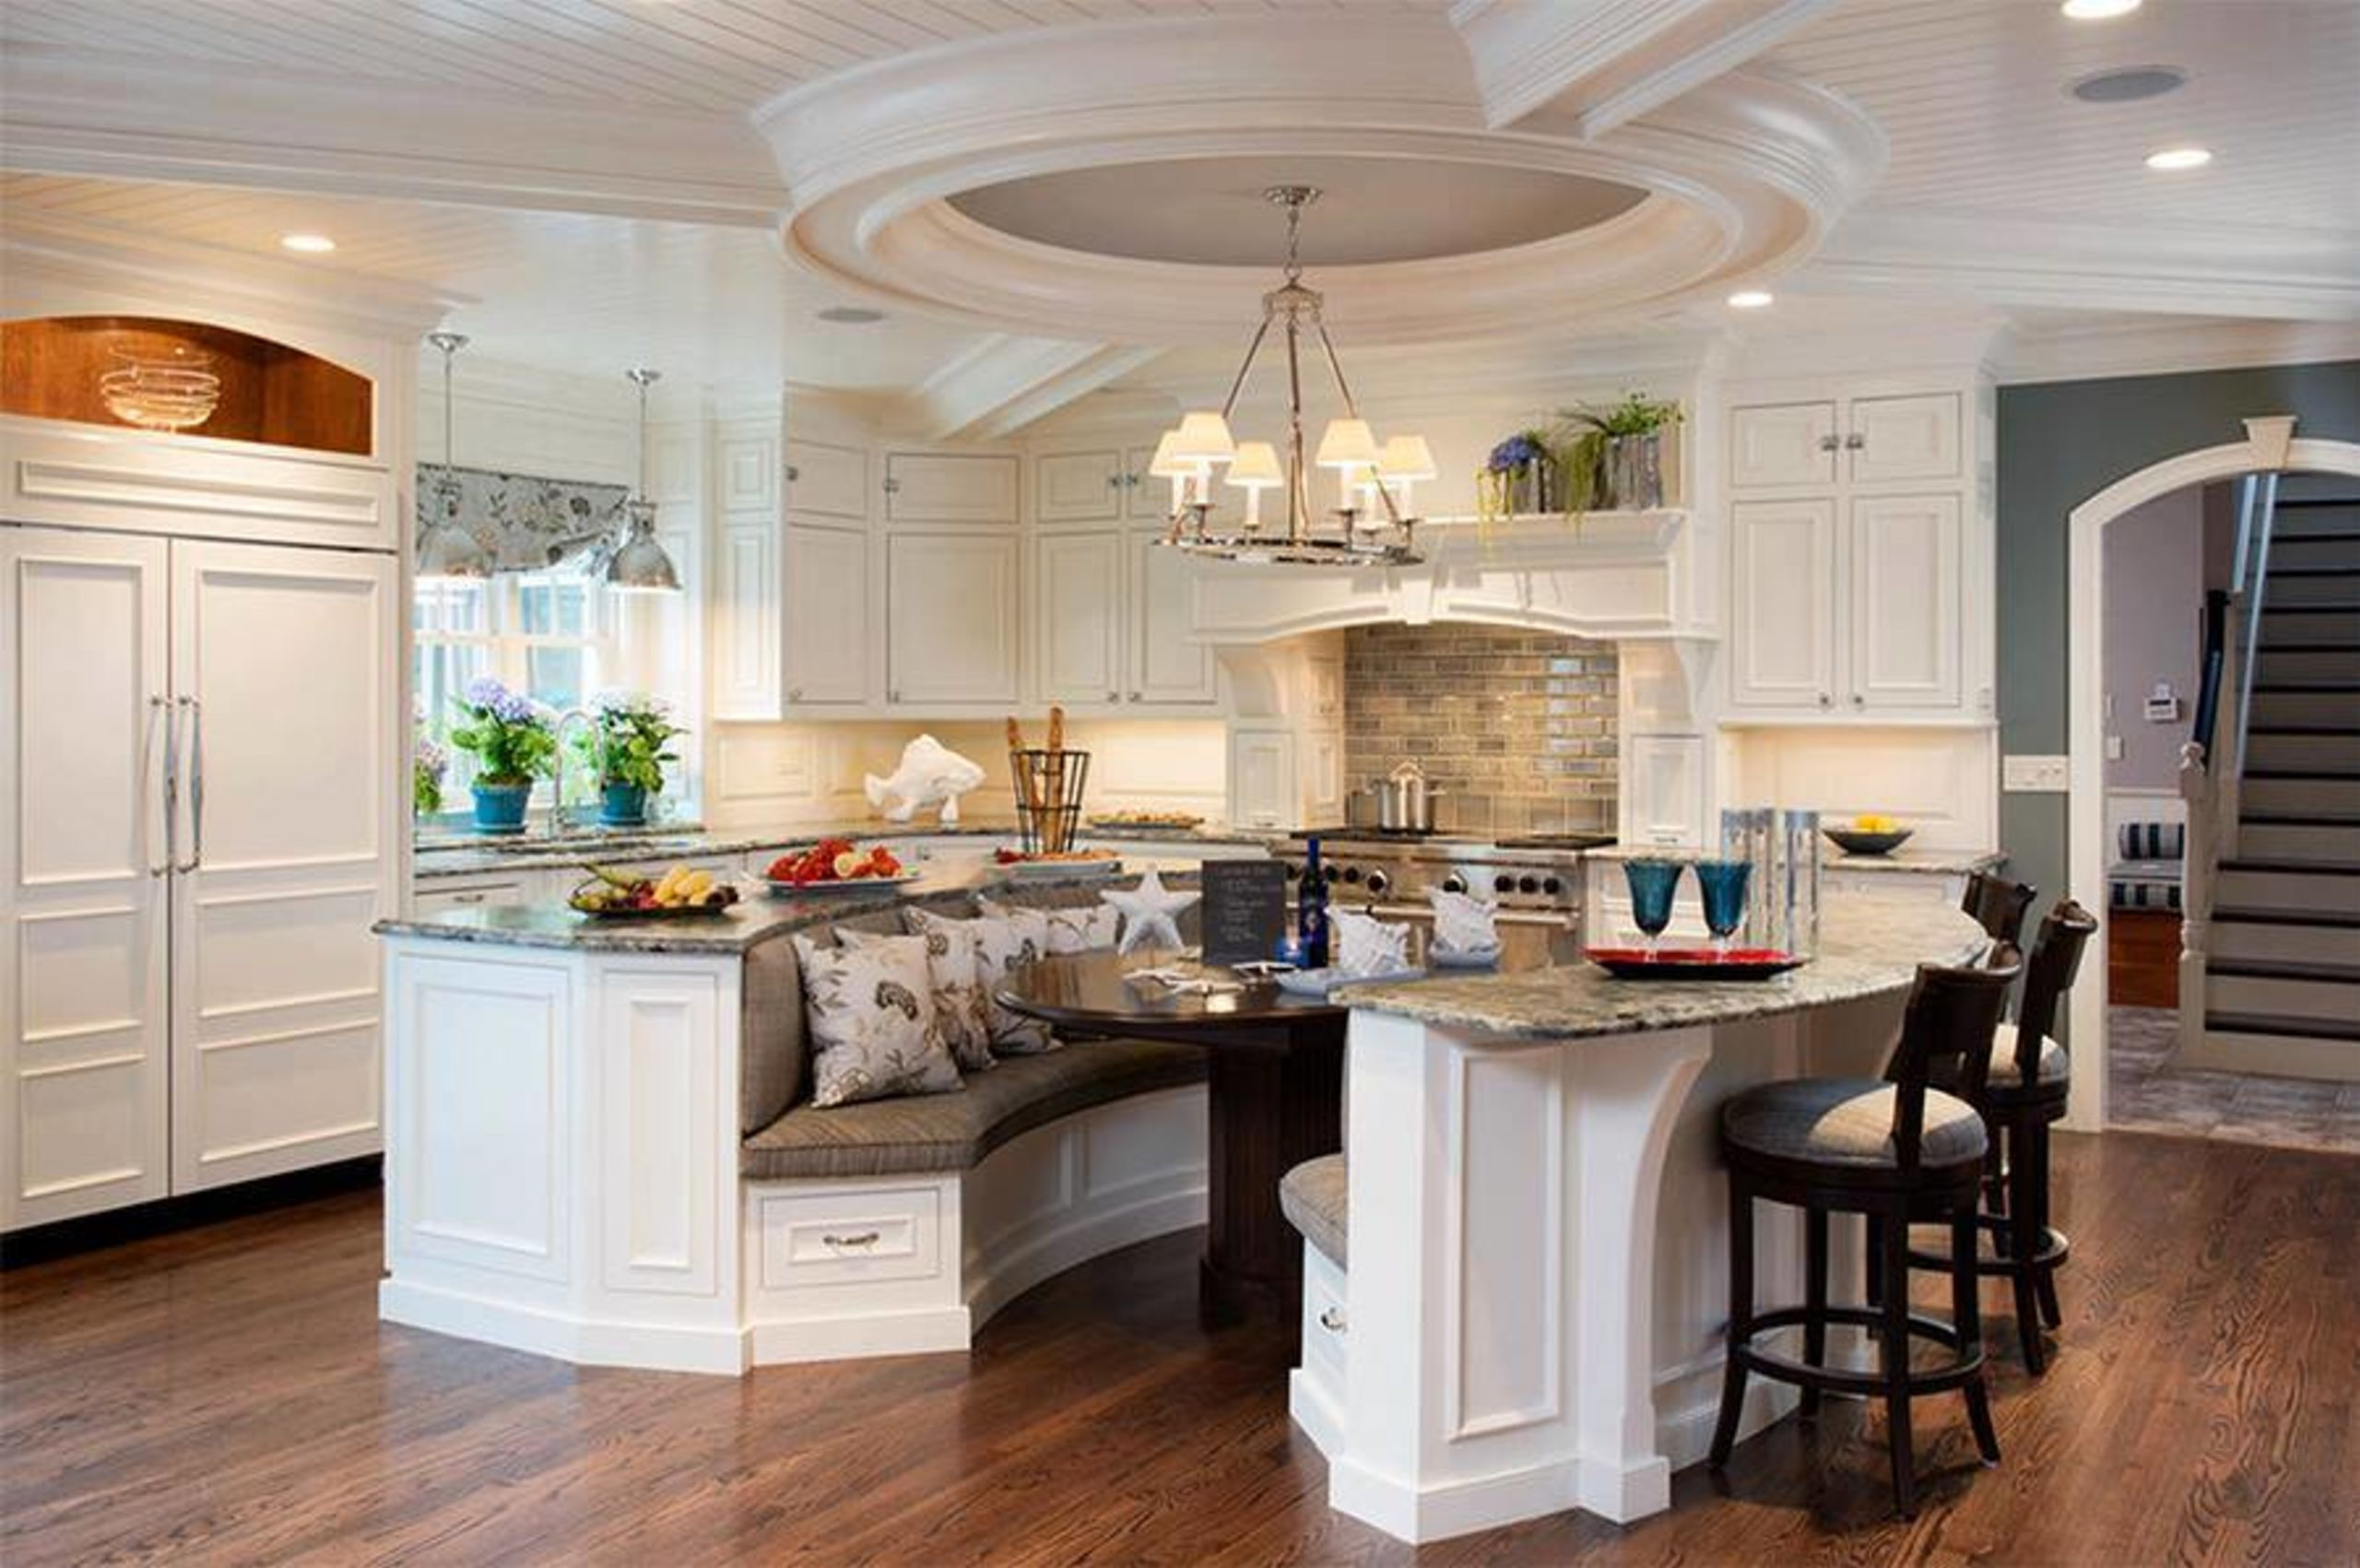 Kitchens are the heart of the home